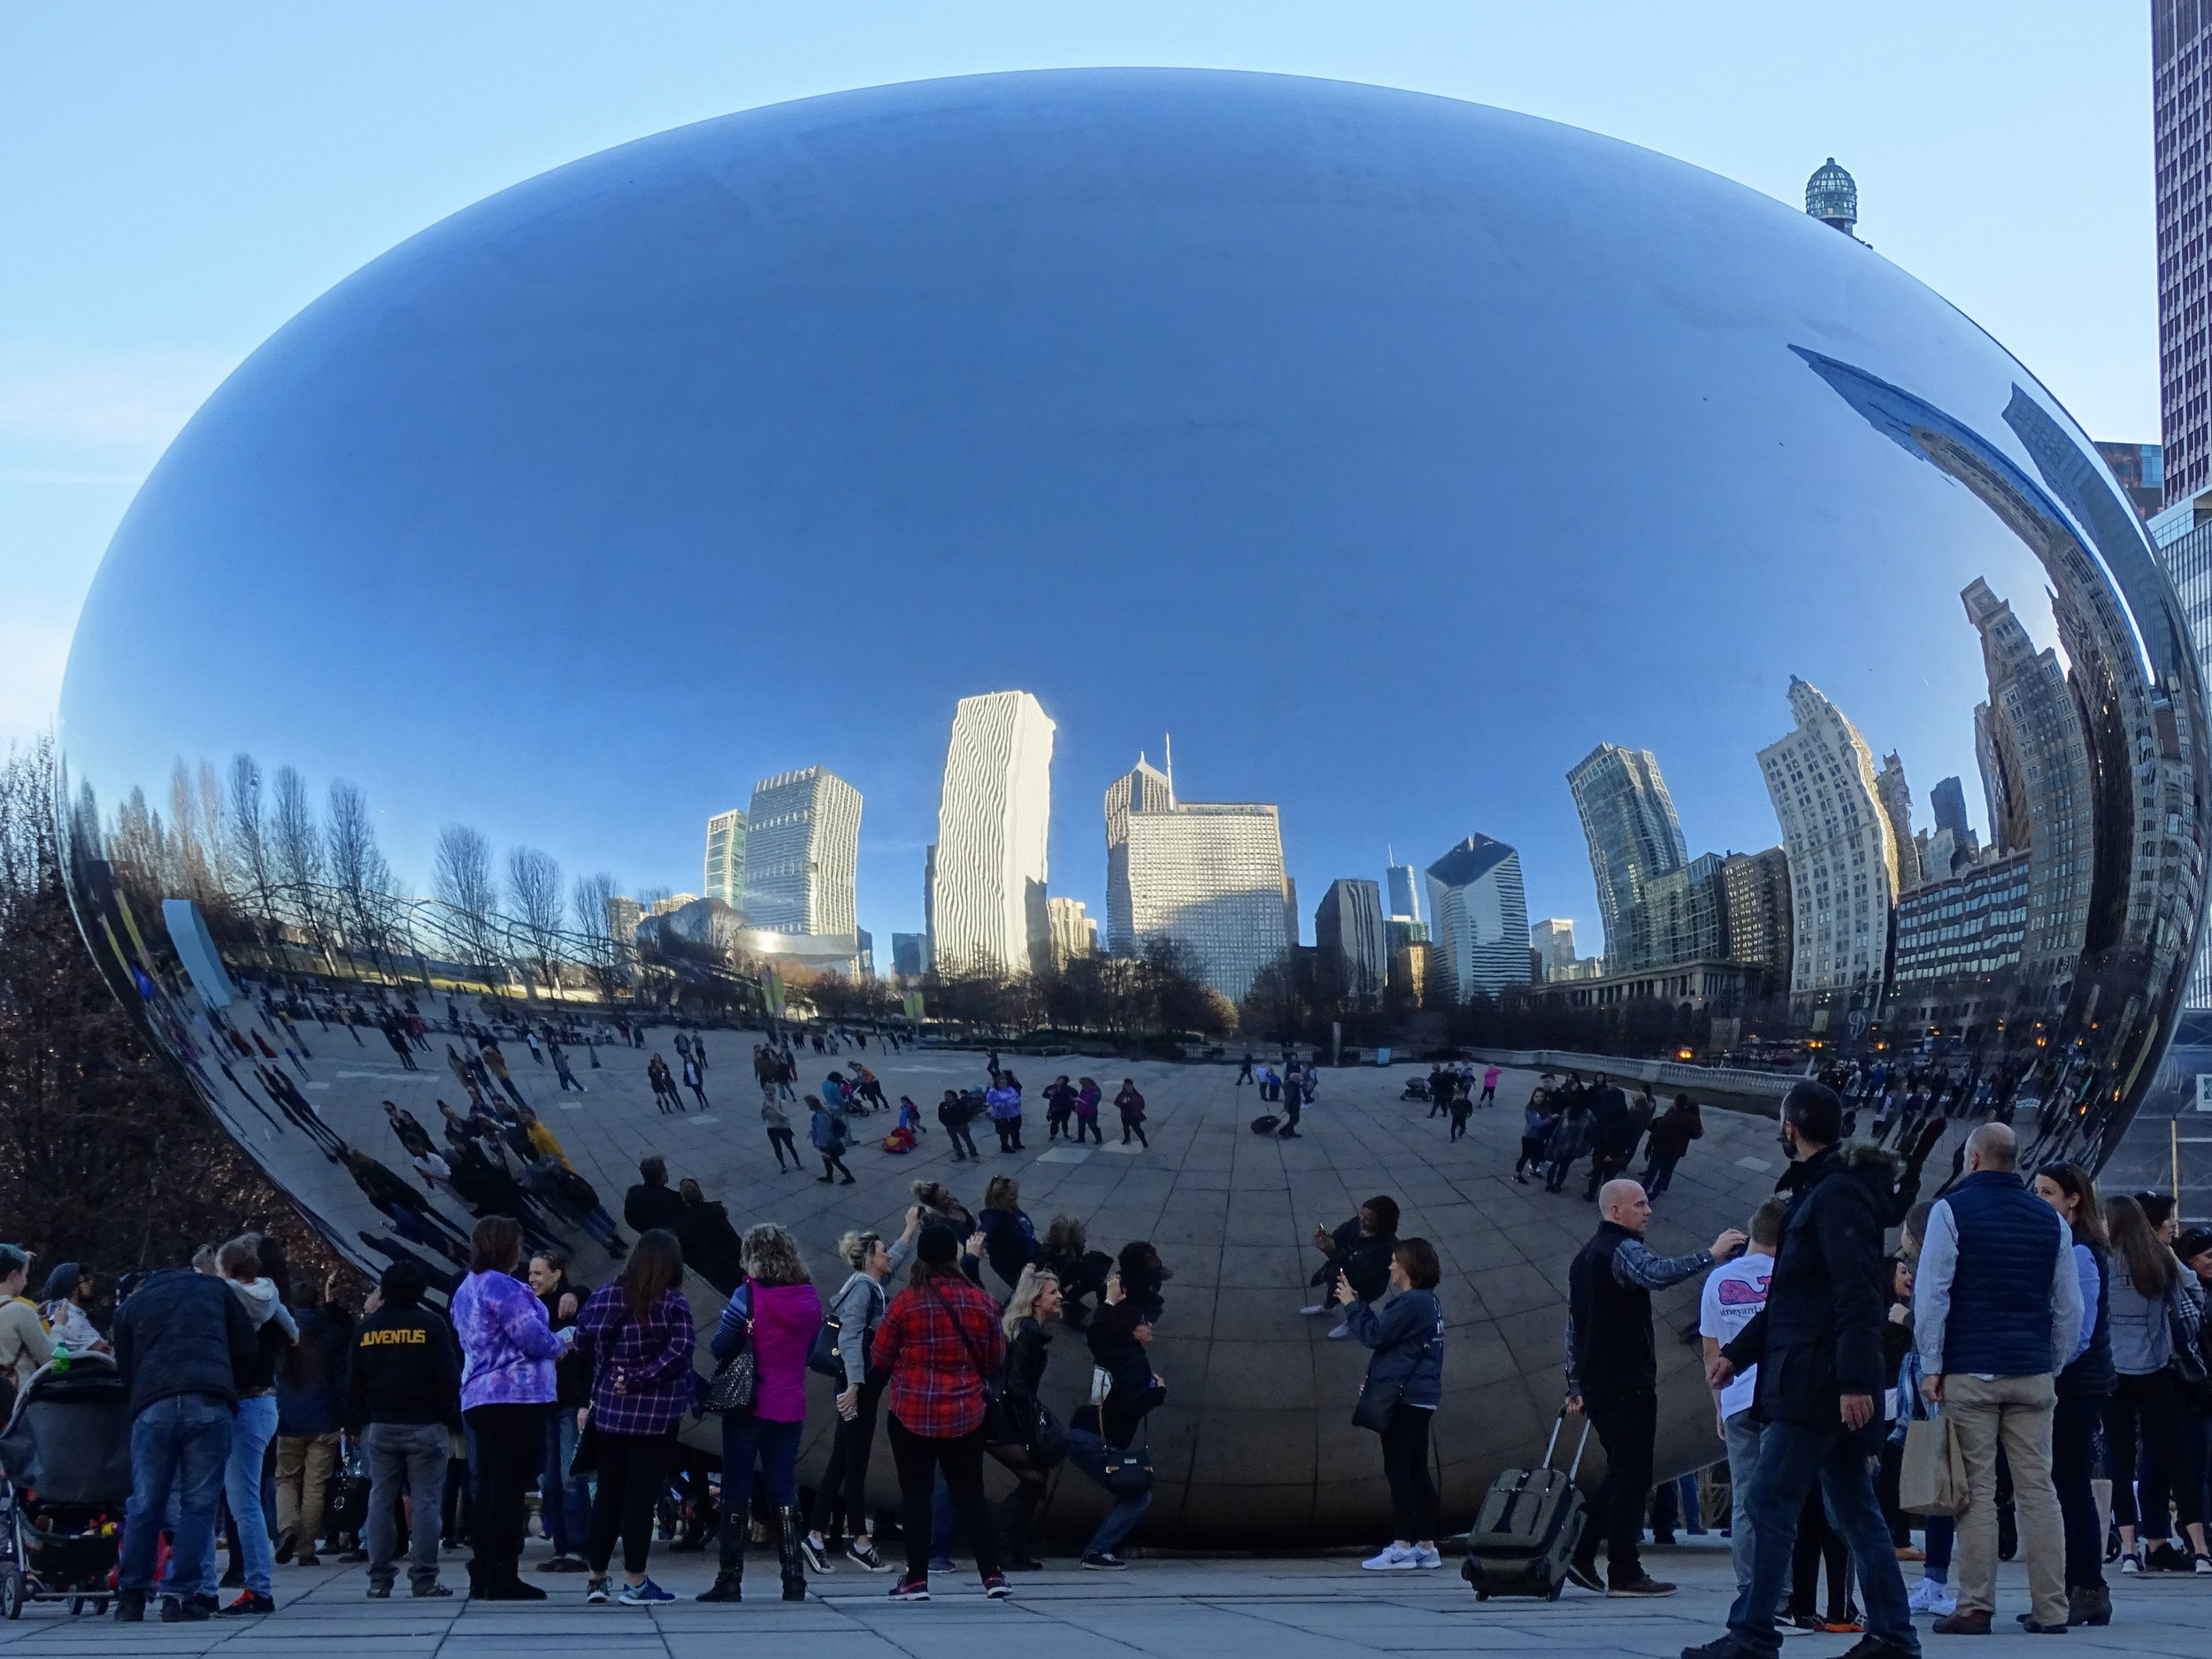 The_Bean_at_Millennium_Park_-_Chicago_-_Illinois_-_USA_(32960540175).jpg